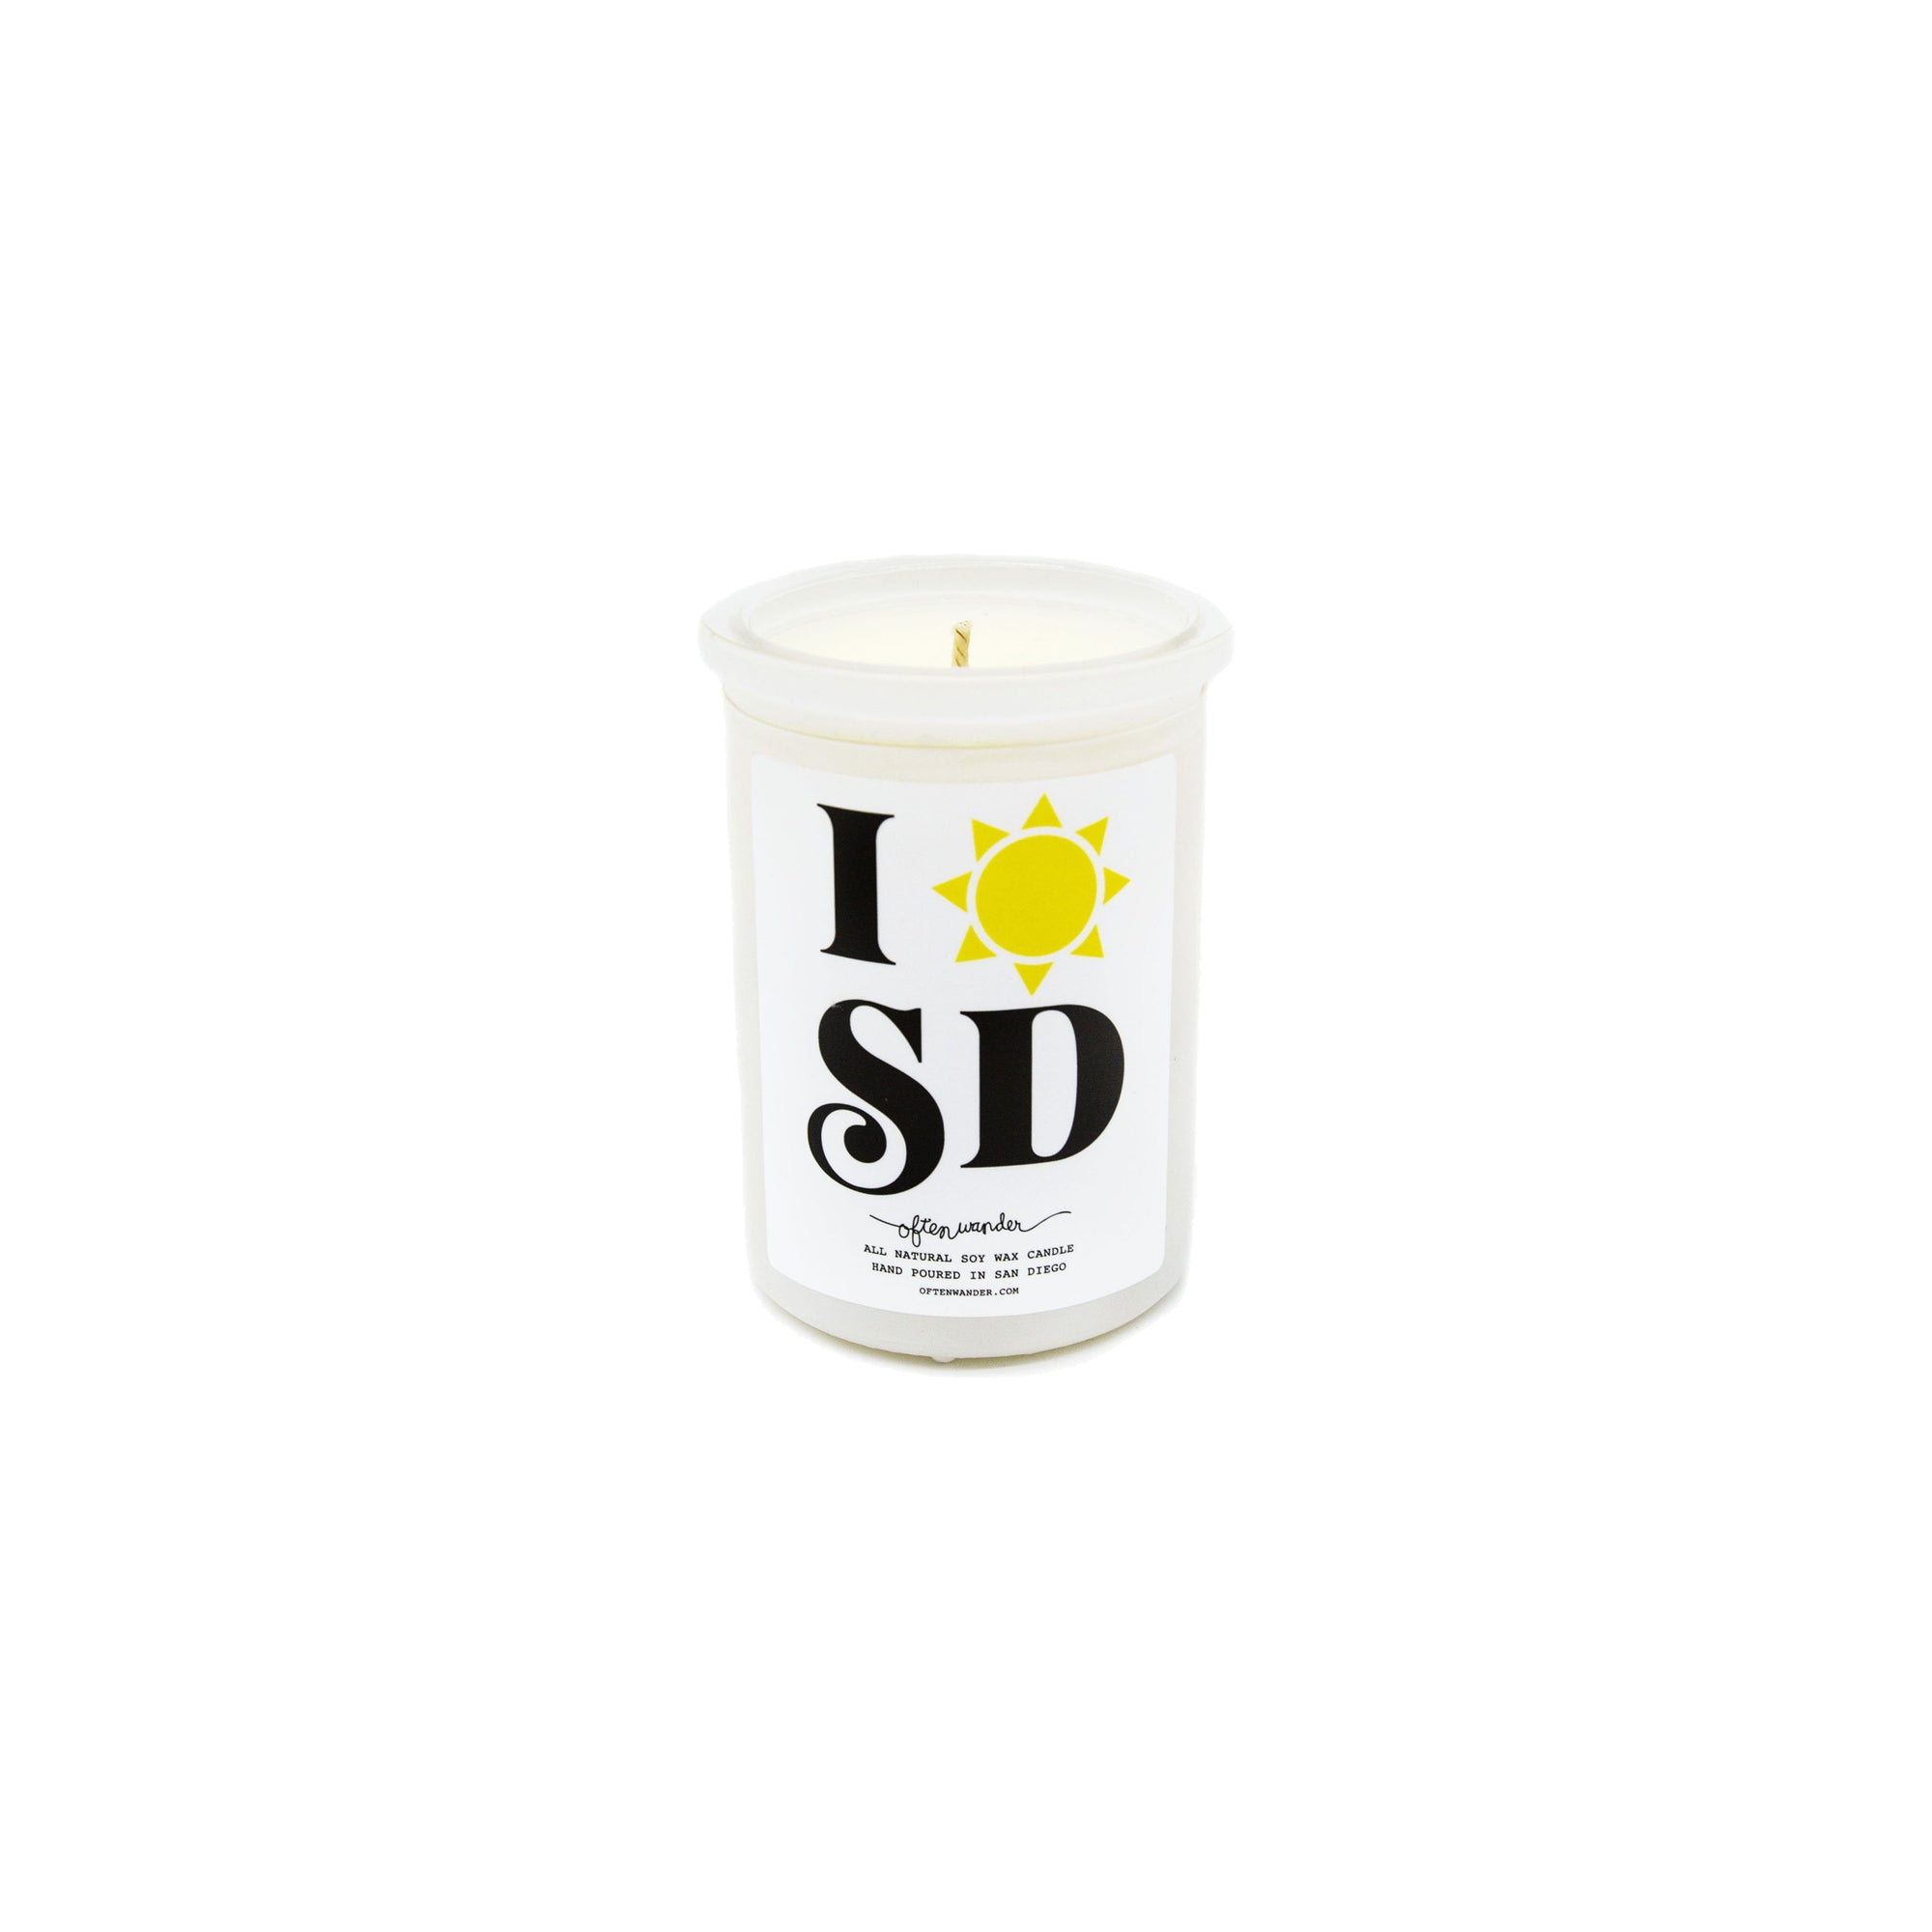 SAN DIEGO CANDLE 6OZ